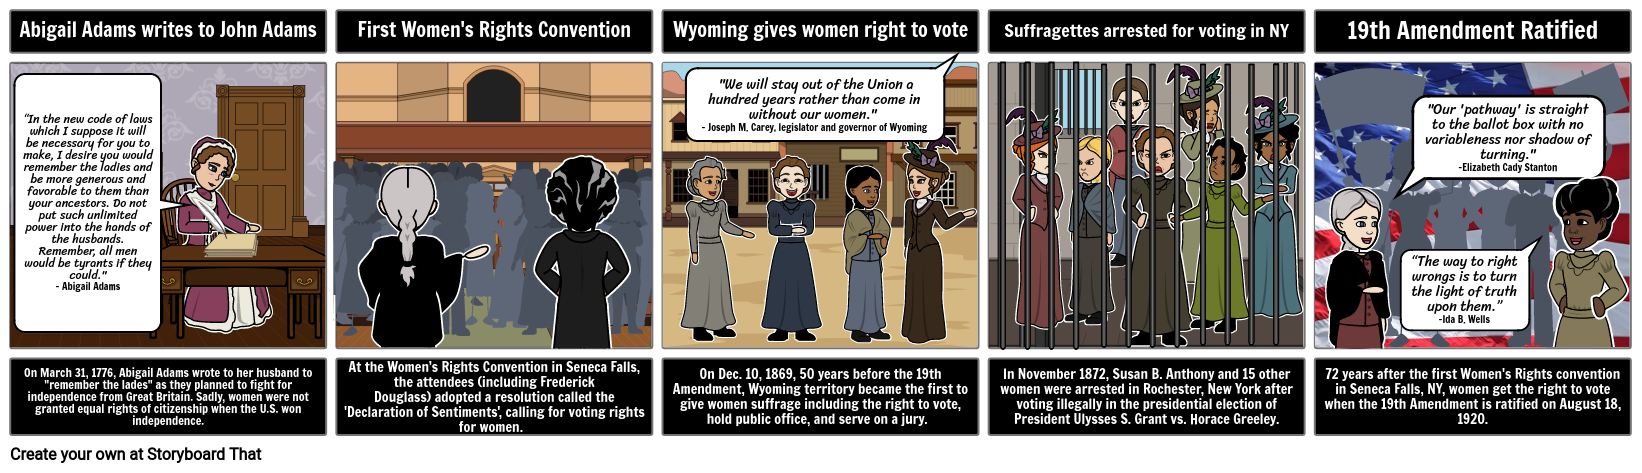 Voting Rights: Road to the 19th Amendment: Women's Right to Vote